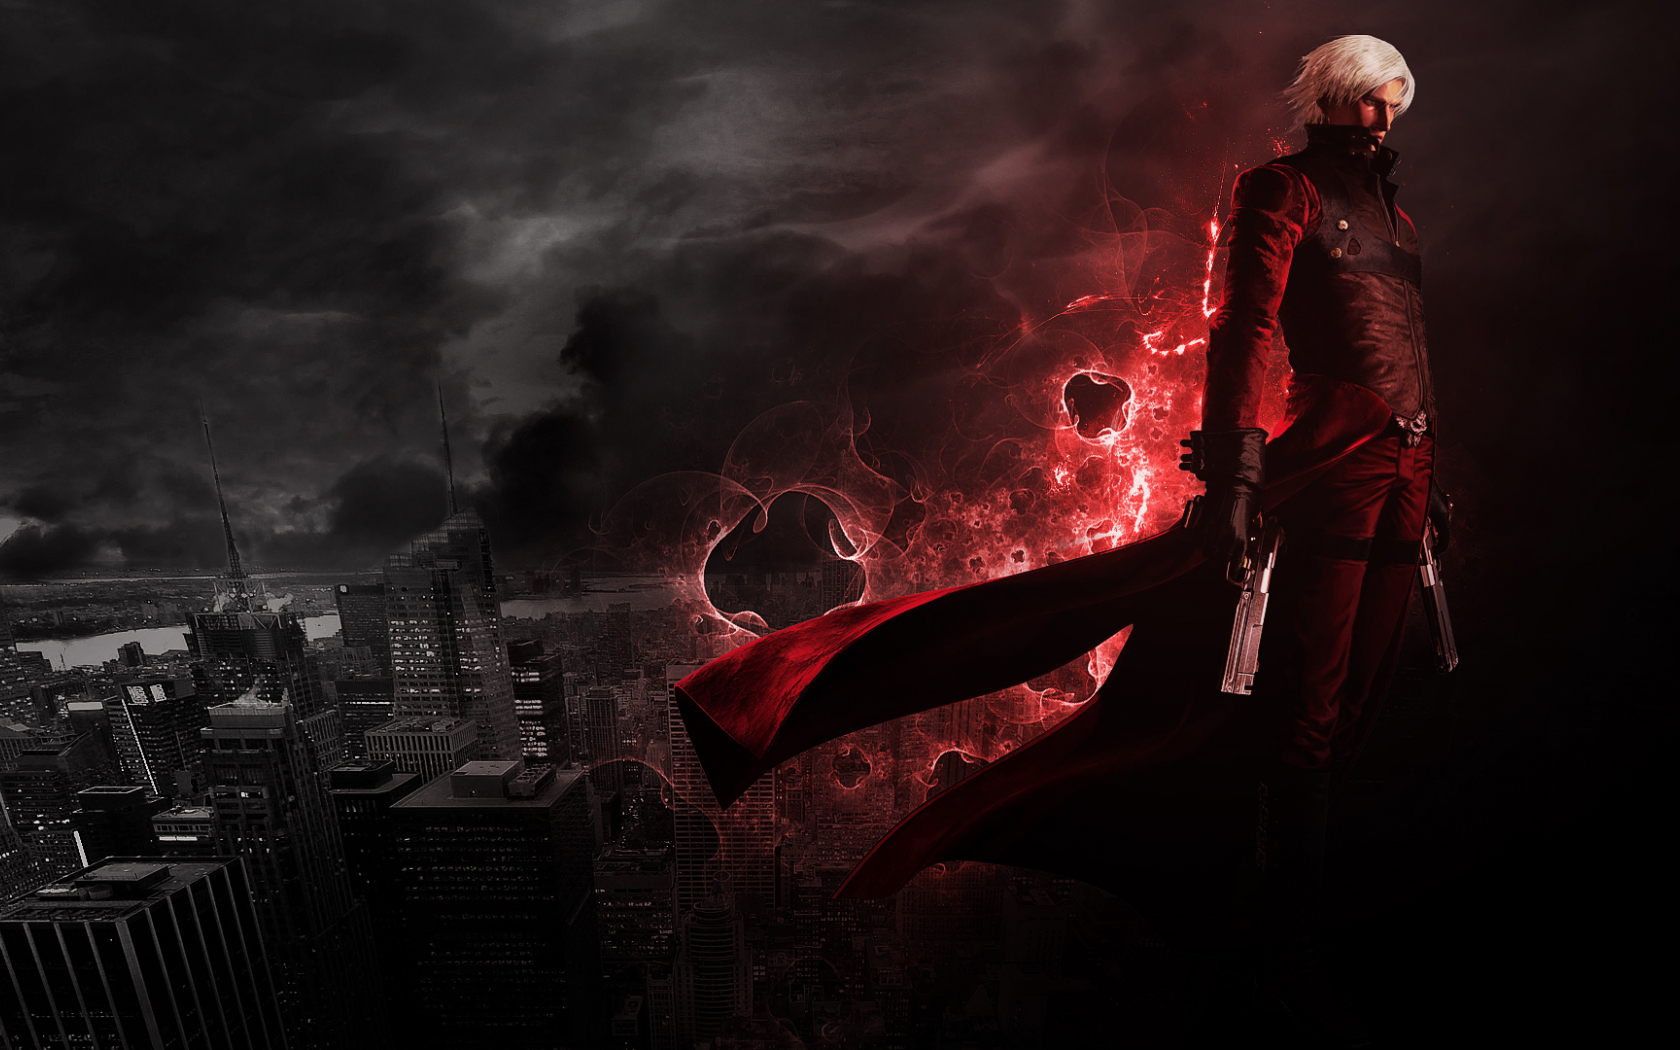 Free Download Devil May Cry 2 Dante Full Hd Desktop Wallpapers